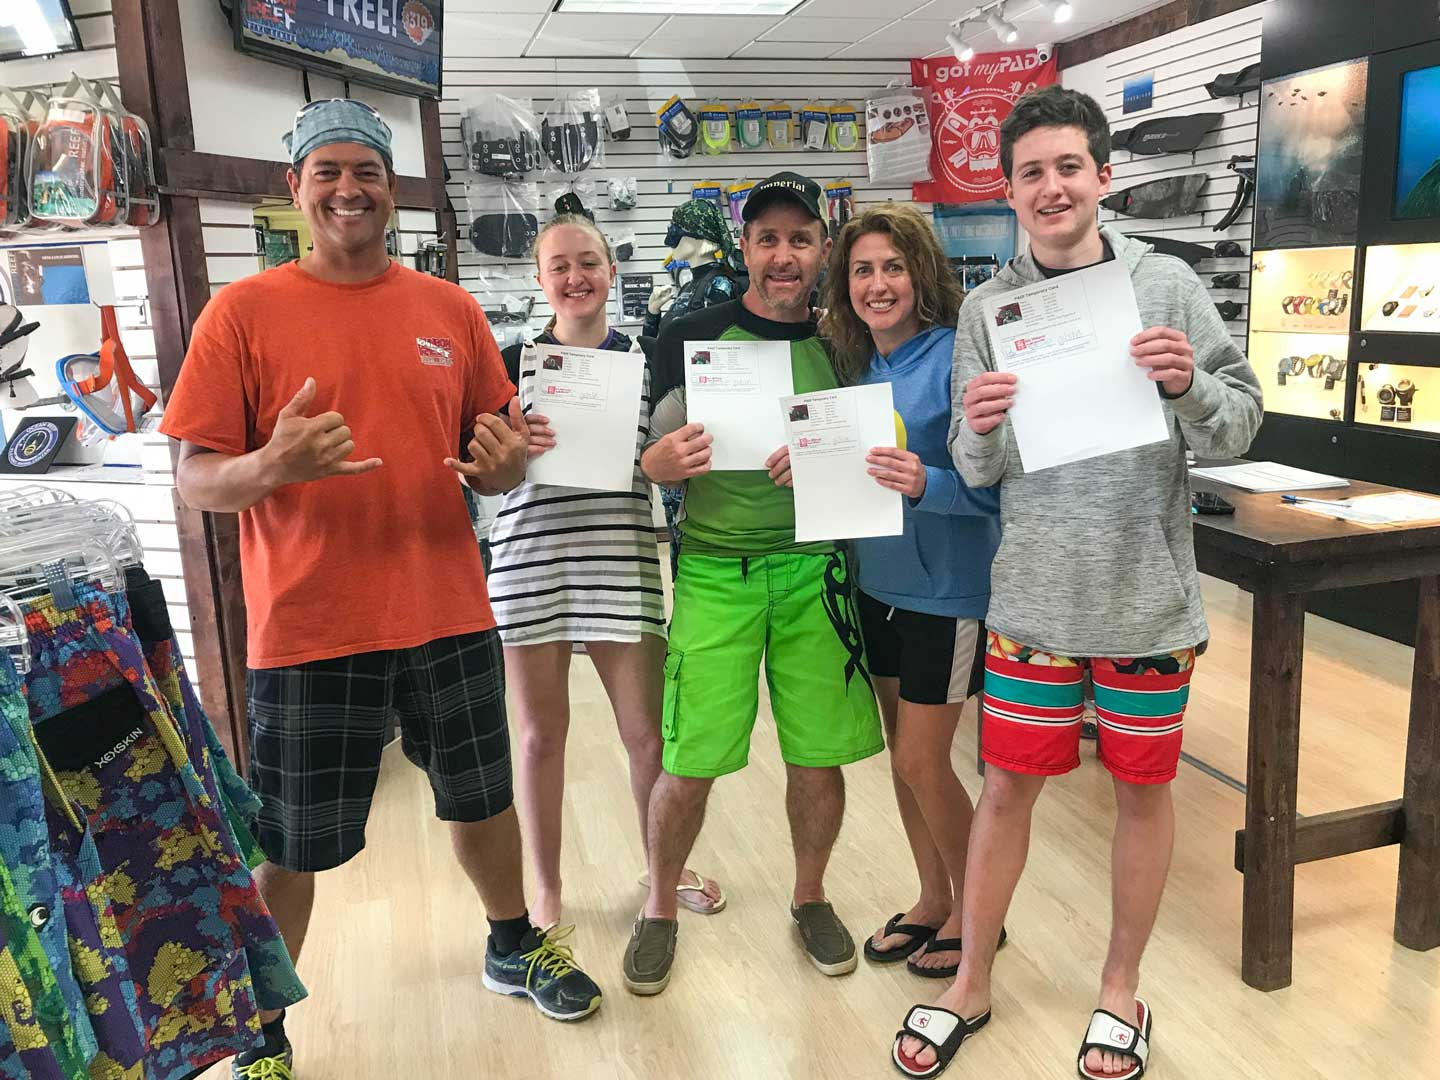 Our family, along with our dive instructor, Rex - posed together inside the dive shop and holding our dive certification papers in victory!